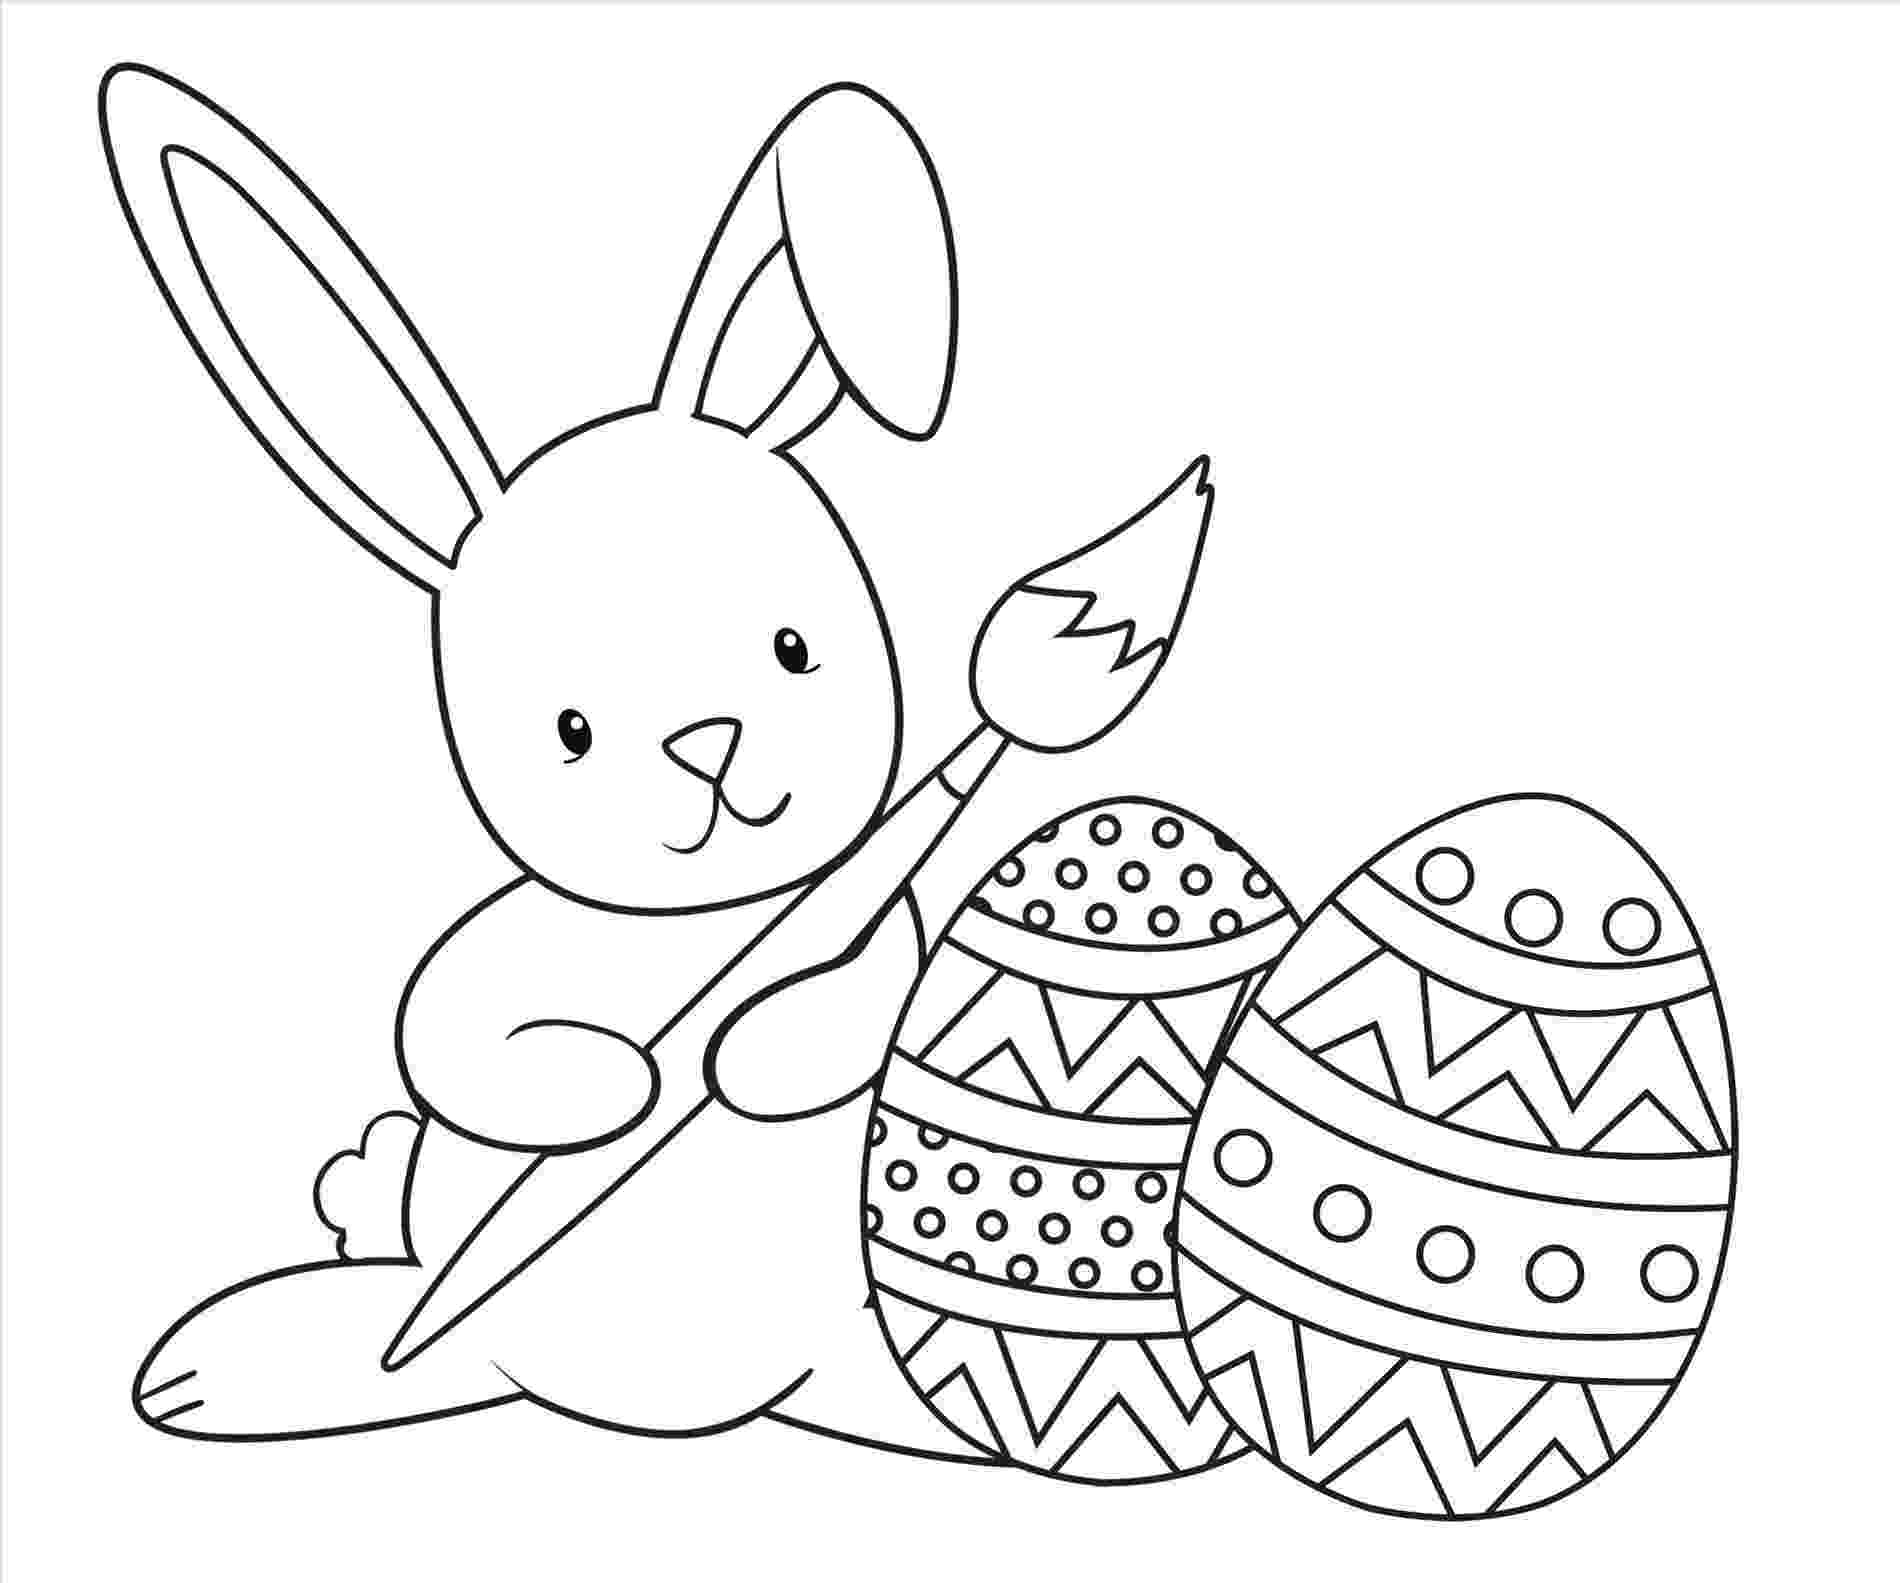 easter bunny coloring sheet bunny line drawing at getdrawingscom free for personal coloring sheet bunny easter